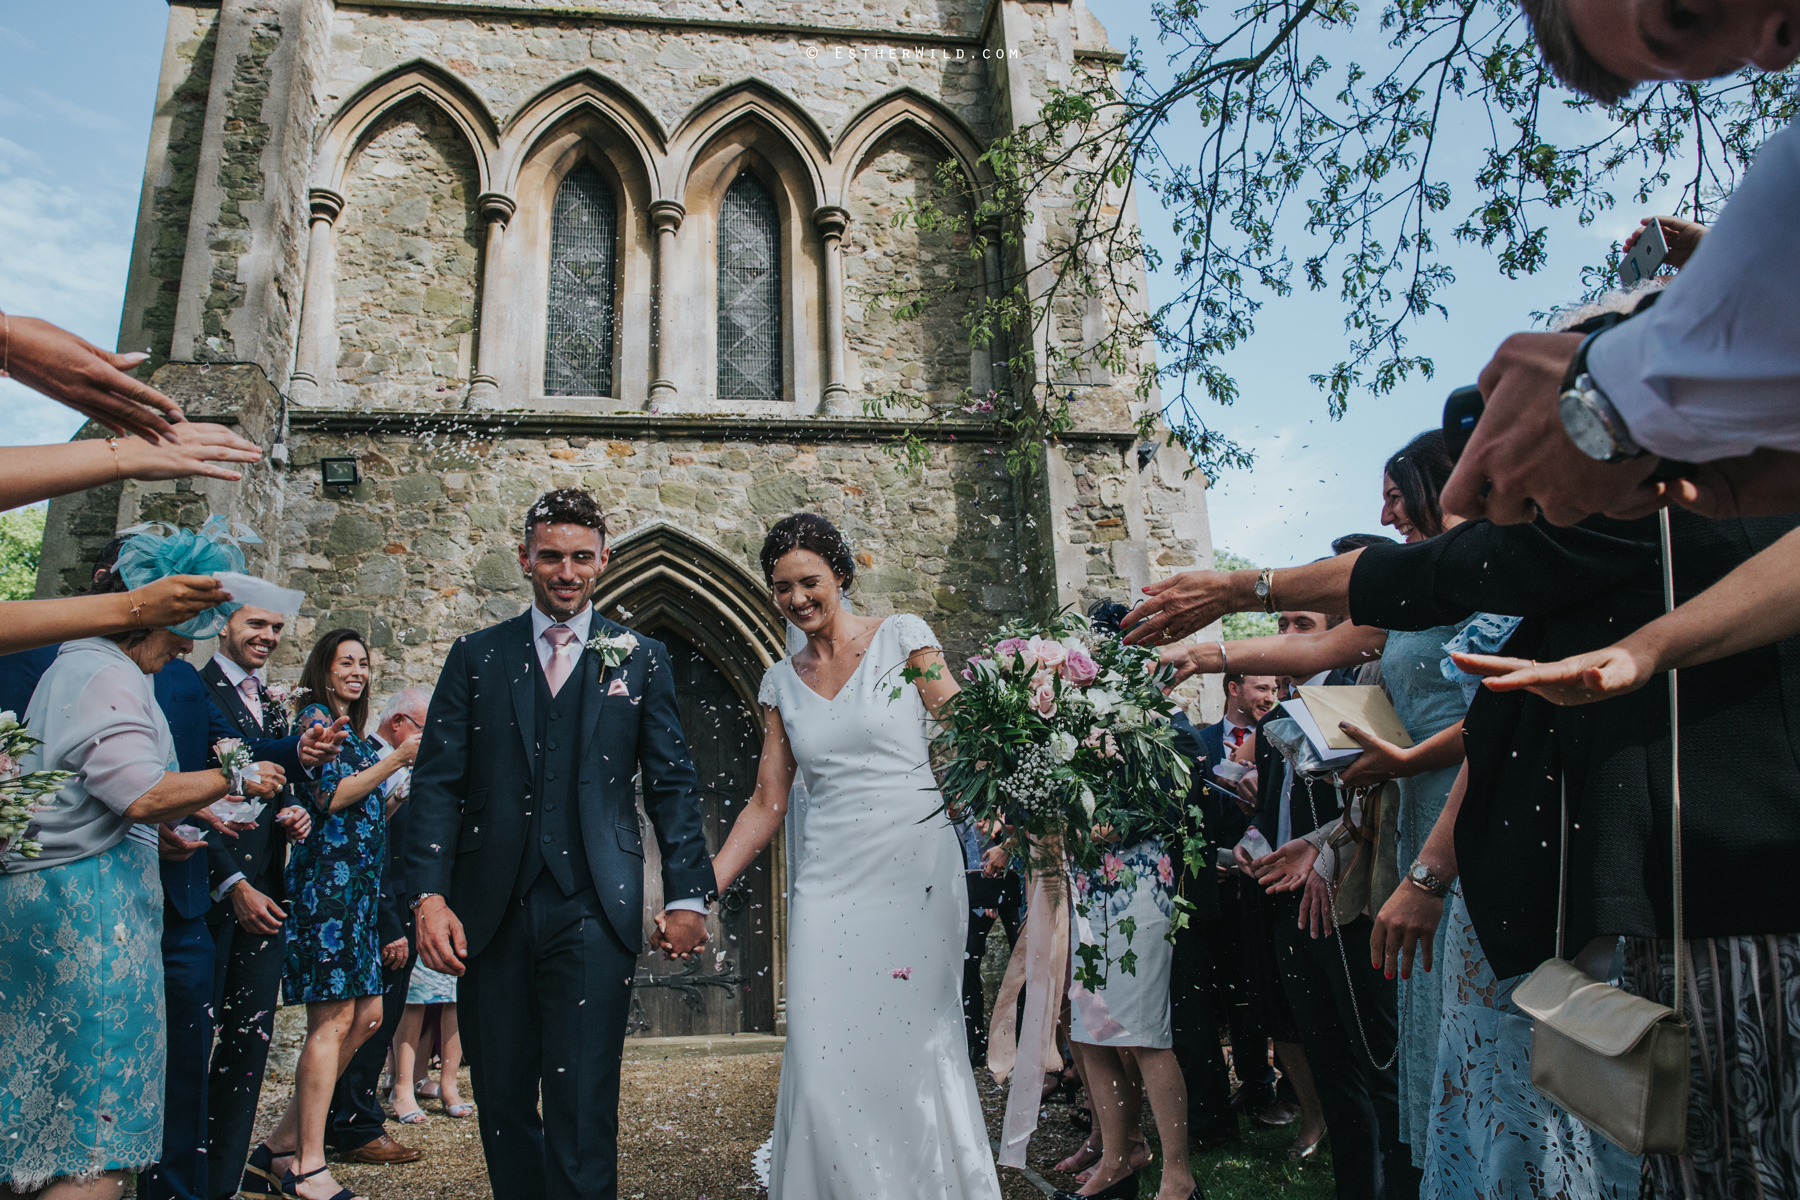 Wootton_Wedding_Copyright_Esther_Wild_Photographer_IMG_1220.jpg